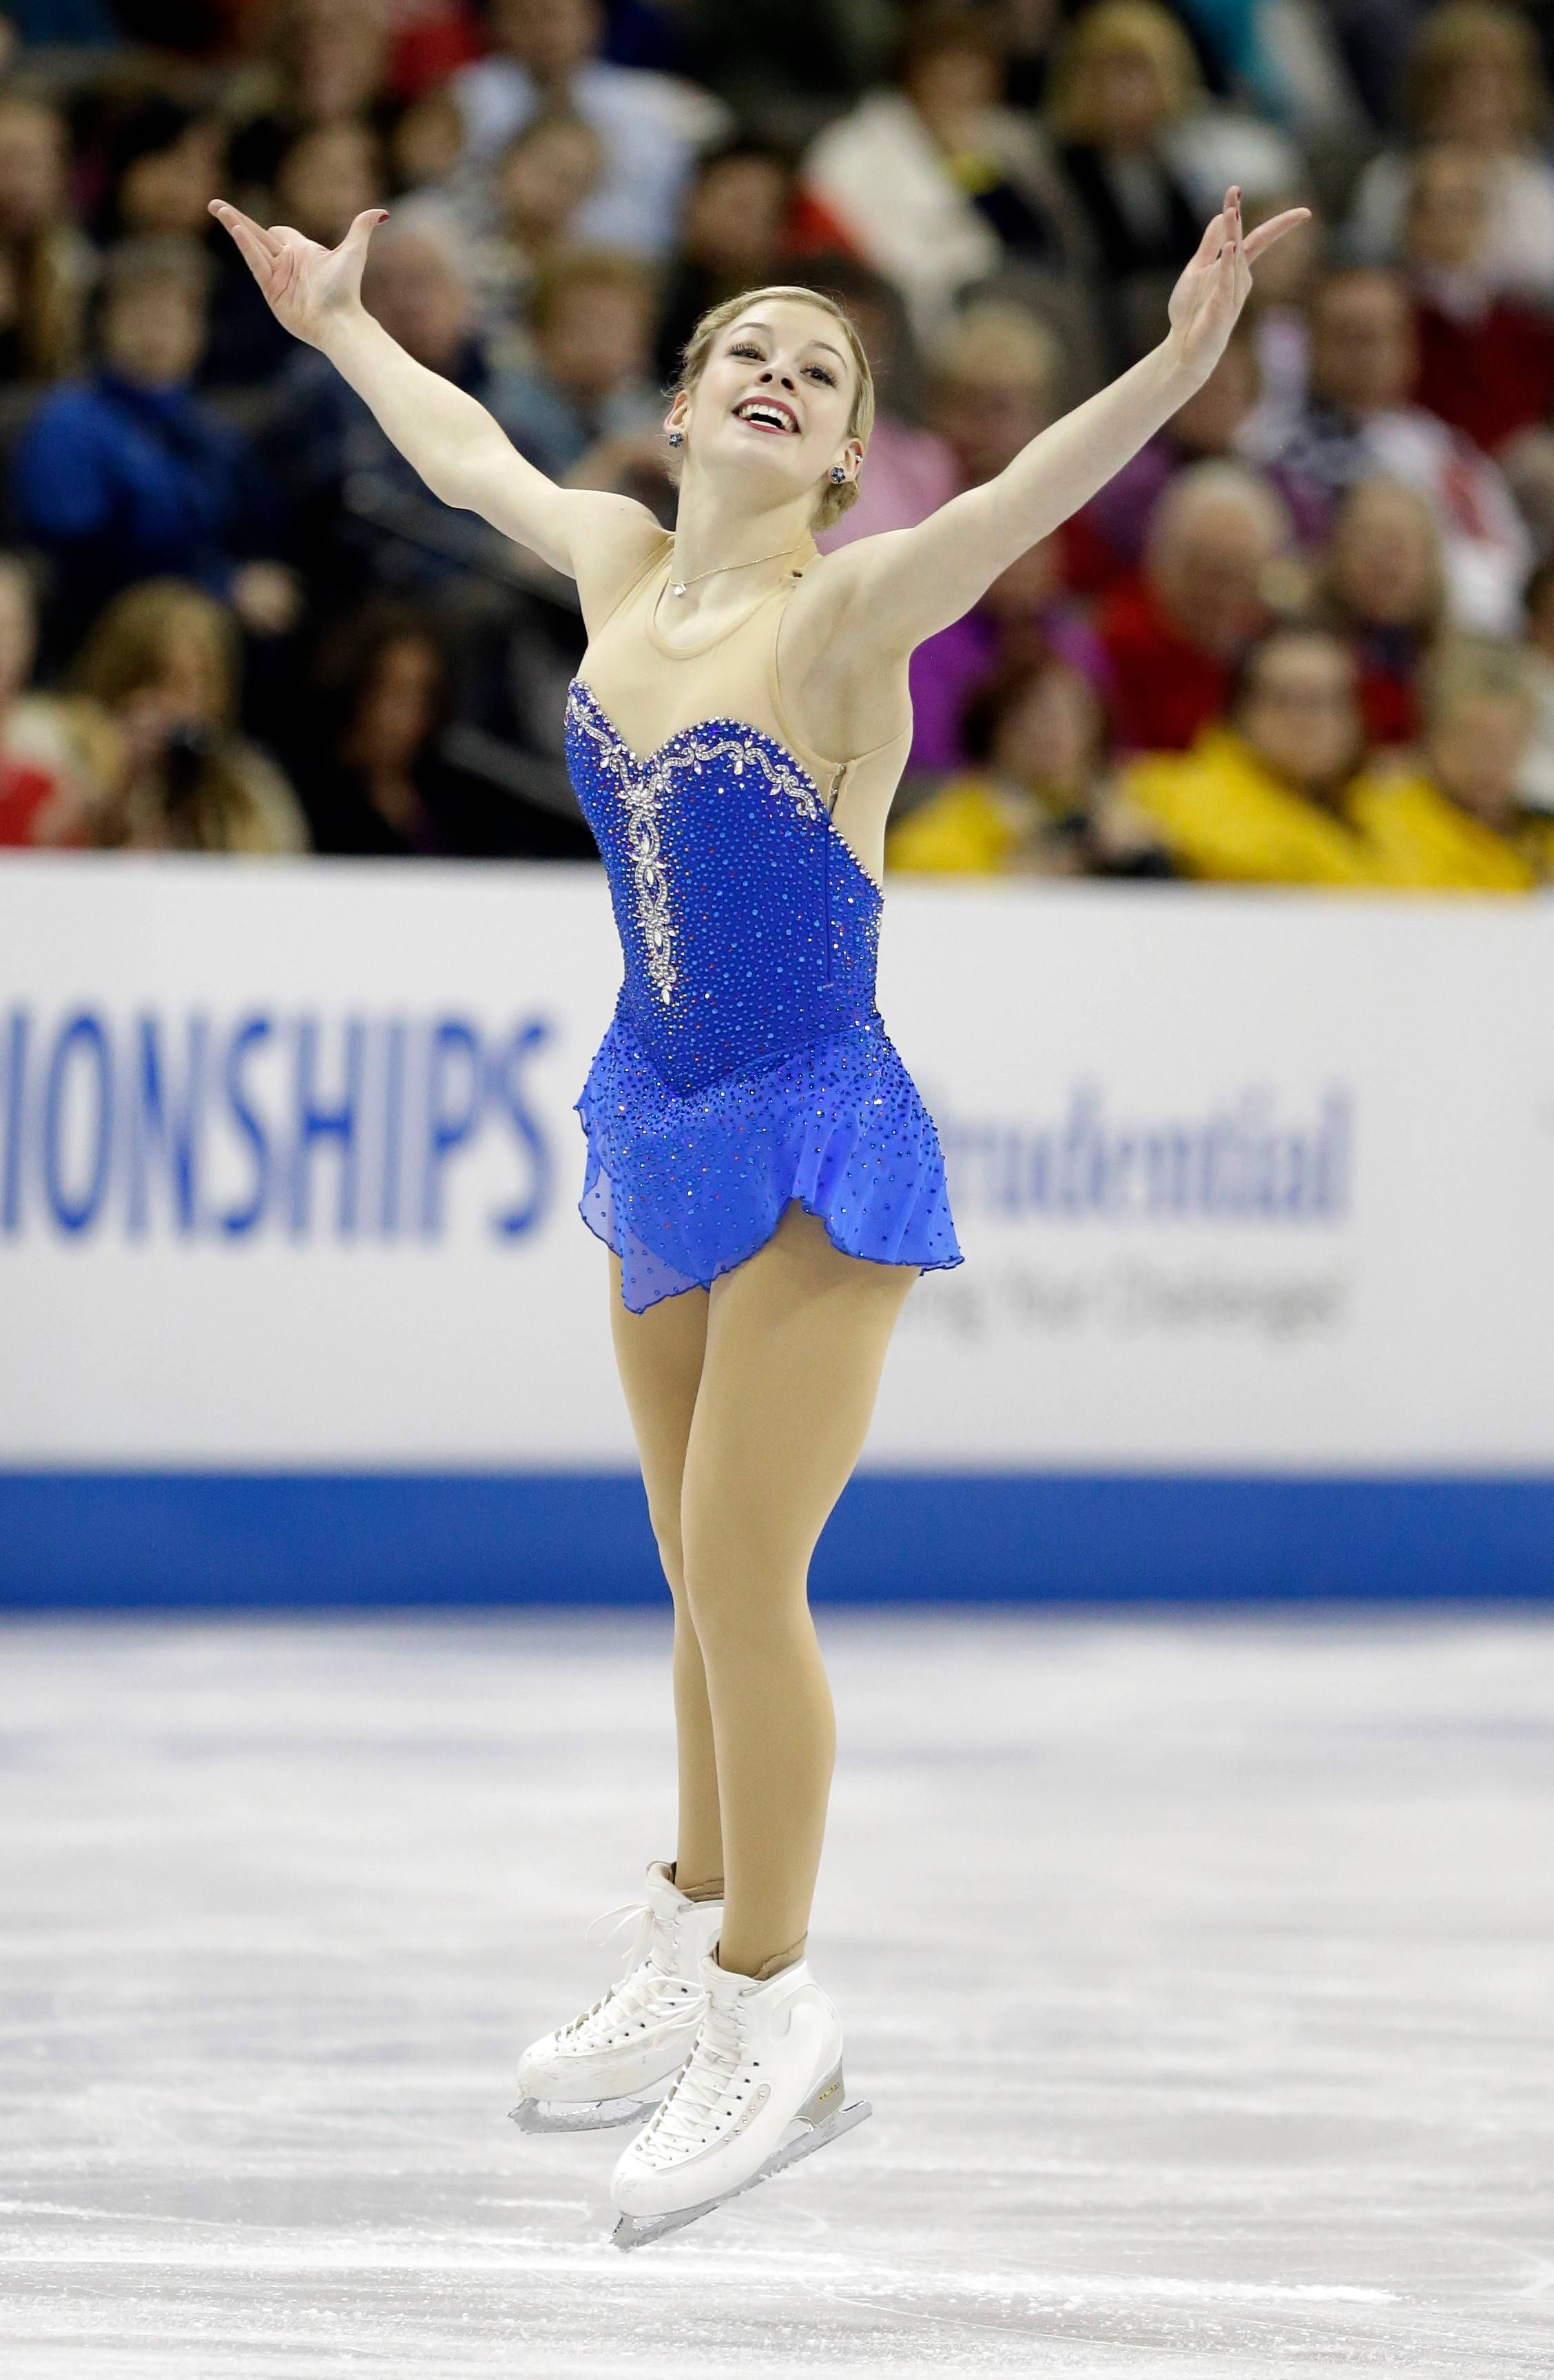 Gracie Gold, competing here at the U.S. figure skating championships, will perform this weekend at the Sears Centre Arena in Hoffman Estates during the three-day 2016 Progressive Skate America.